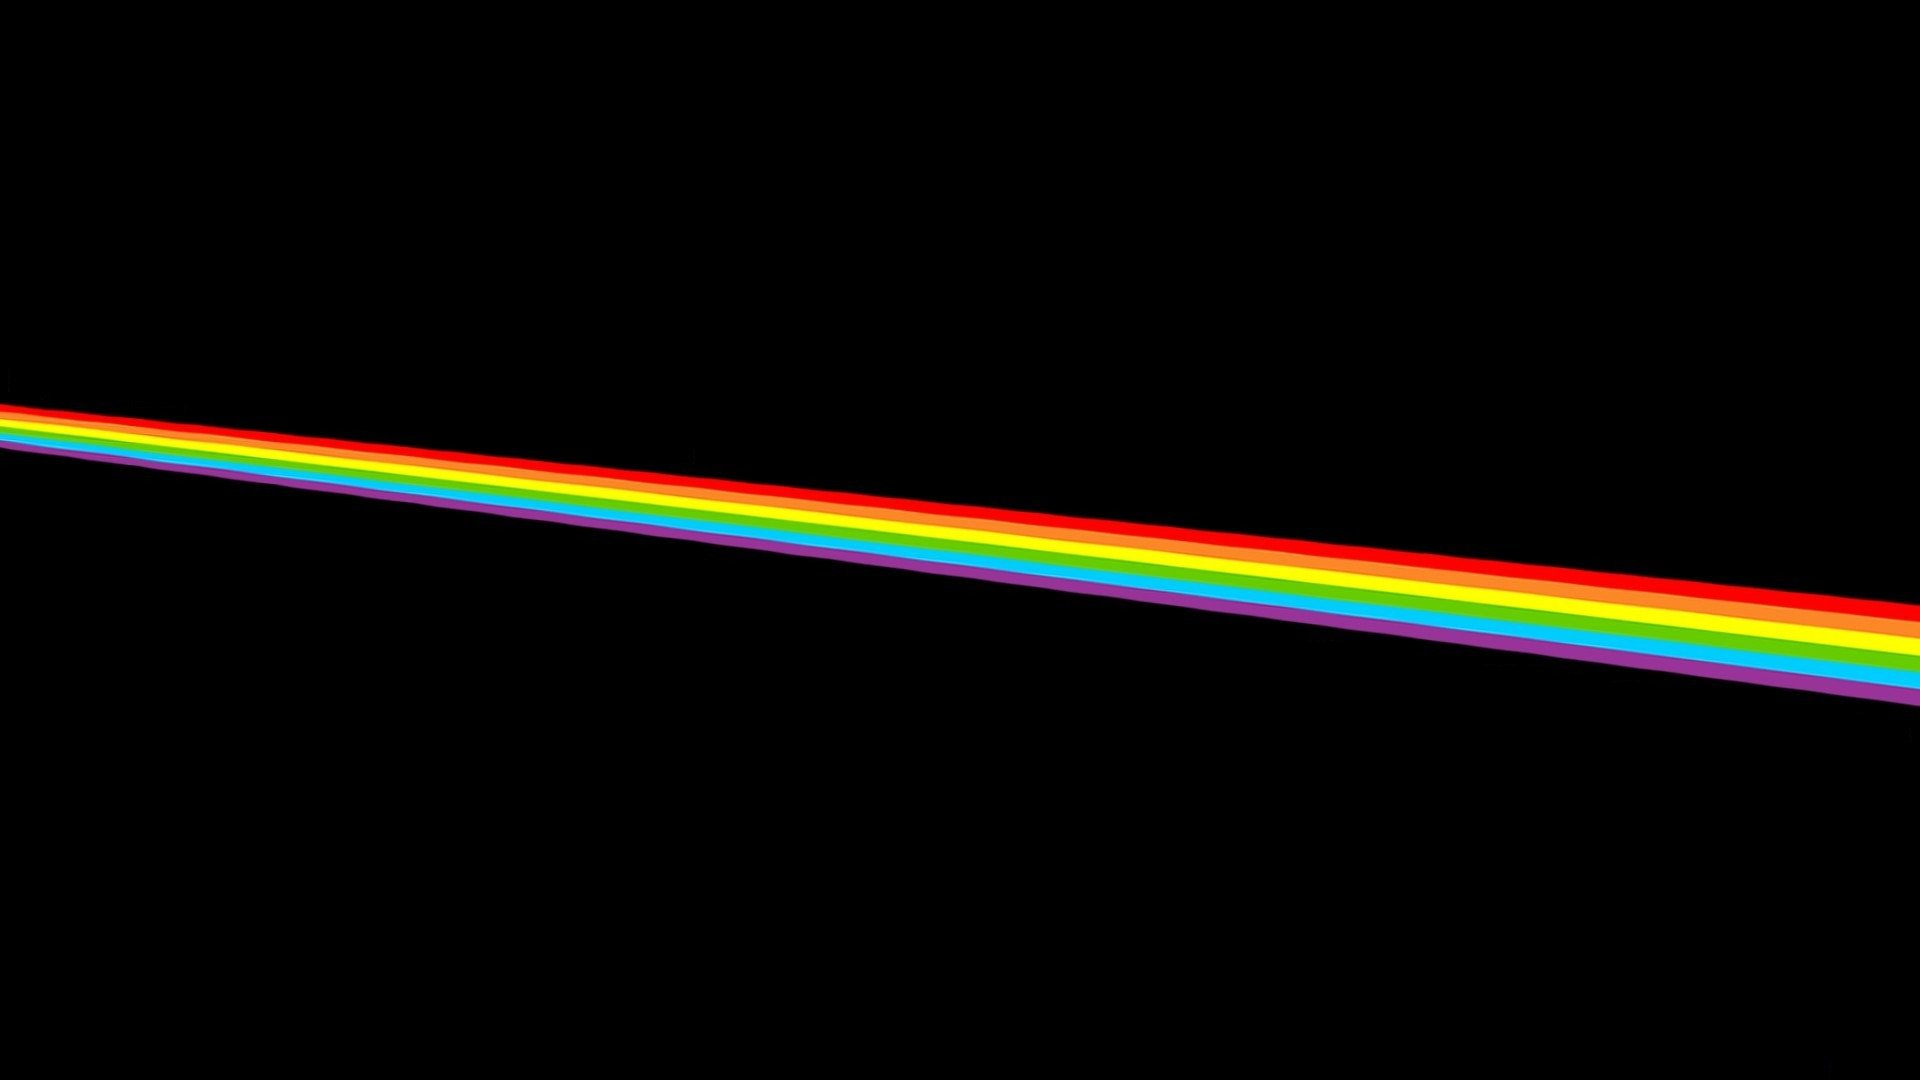 Wallpaper pink floyd dark side of the moon pink floyd wallpapers 1920x1080